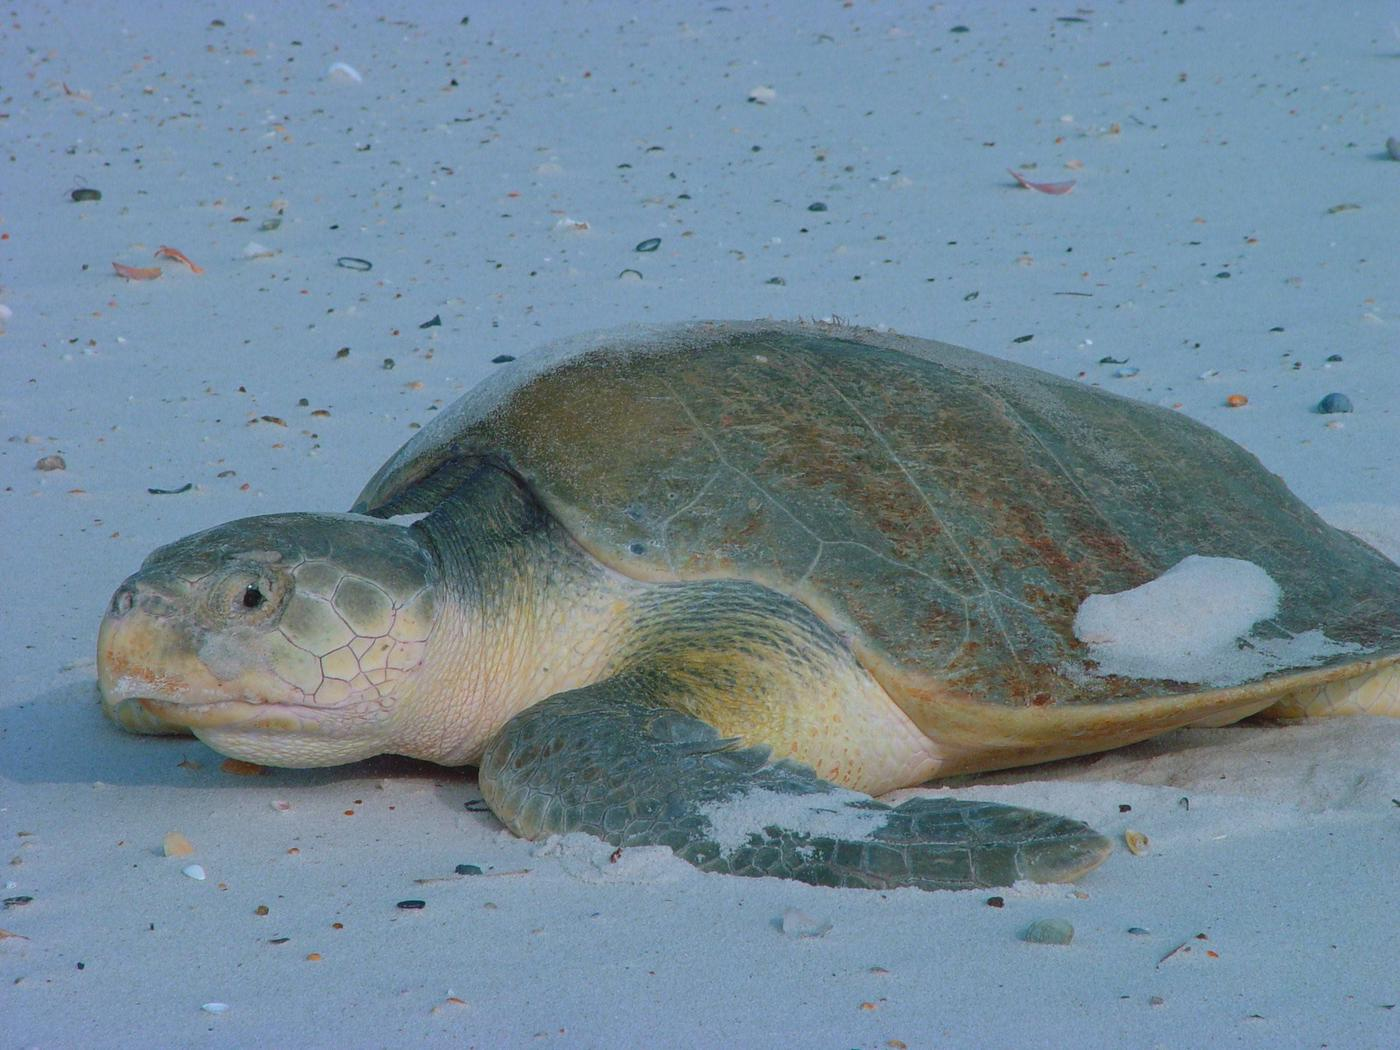 Bon Secour National Wildlife RefugeKemp's Ridley Turtle at Bon Secour National Wildlife Refuge